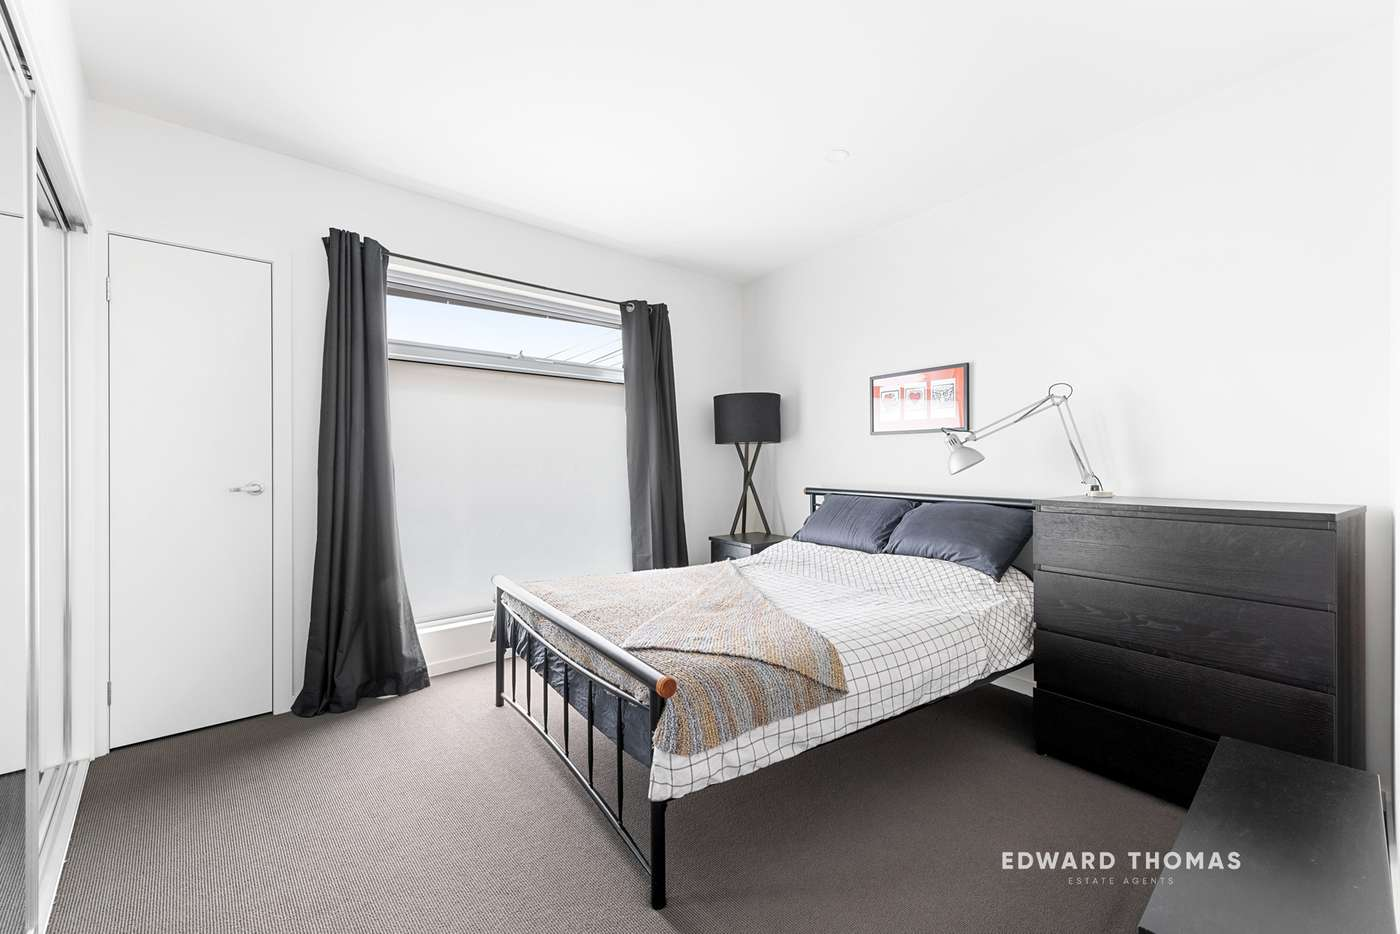 Fifth view of Homely apartment listing, 106/651 Moreland Road, Pascoe Vale South VIC 3044